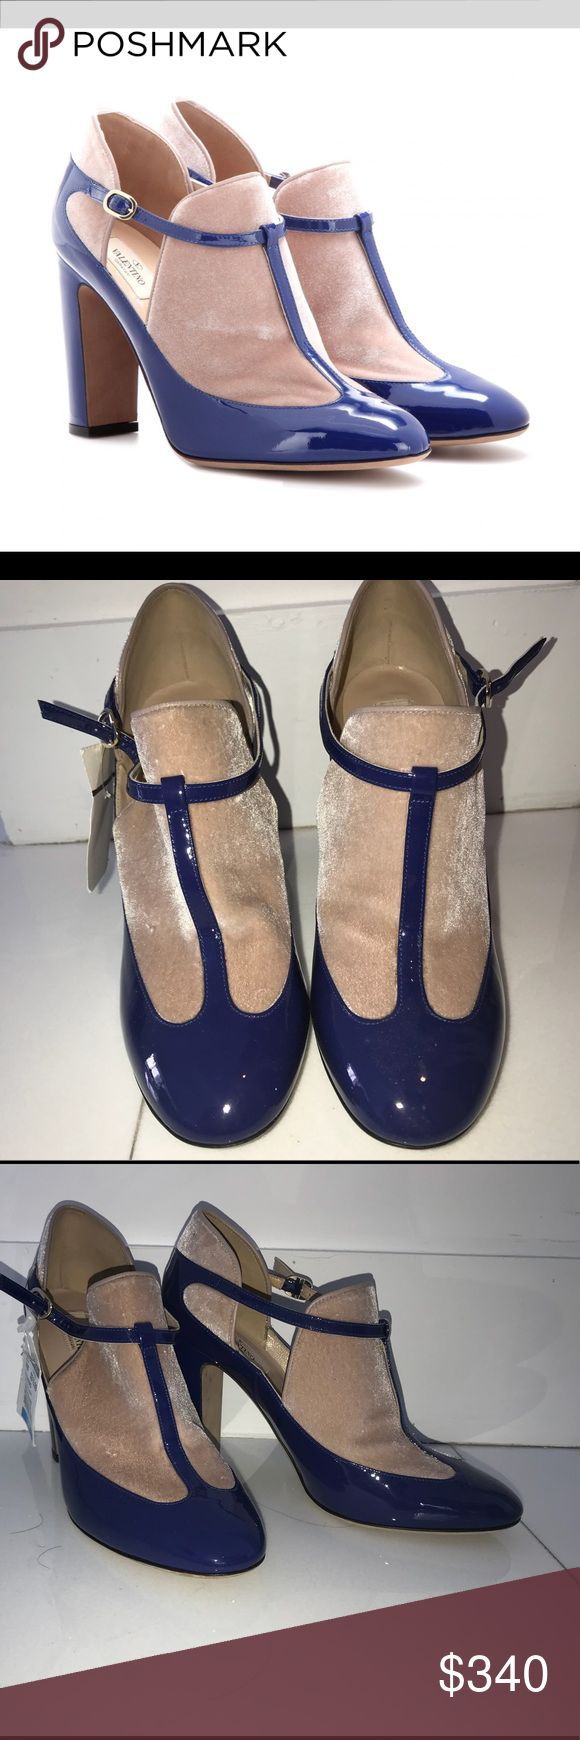 Blue Valentino shoes high heels Beautiful and very elegant Valentino shoes made in Italy. I bought it at Century 21 approx 8 months ago, but never worn it. It still has Tag from the store. It is 39 European size , I'm US 8,5 and it fits great. I bought it for 320+ ny tax. Will sell for 340$. Original price around $820. Please see pictures, bottom has some scratches I believe from trying at the store, but other that that it's brand new and in excellent condition. No bag or box, sorry…